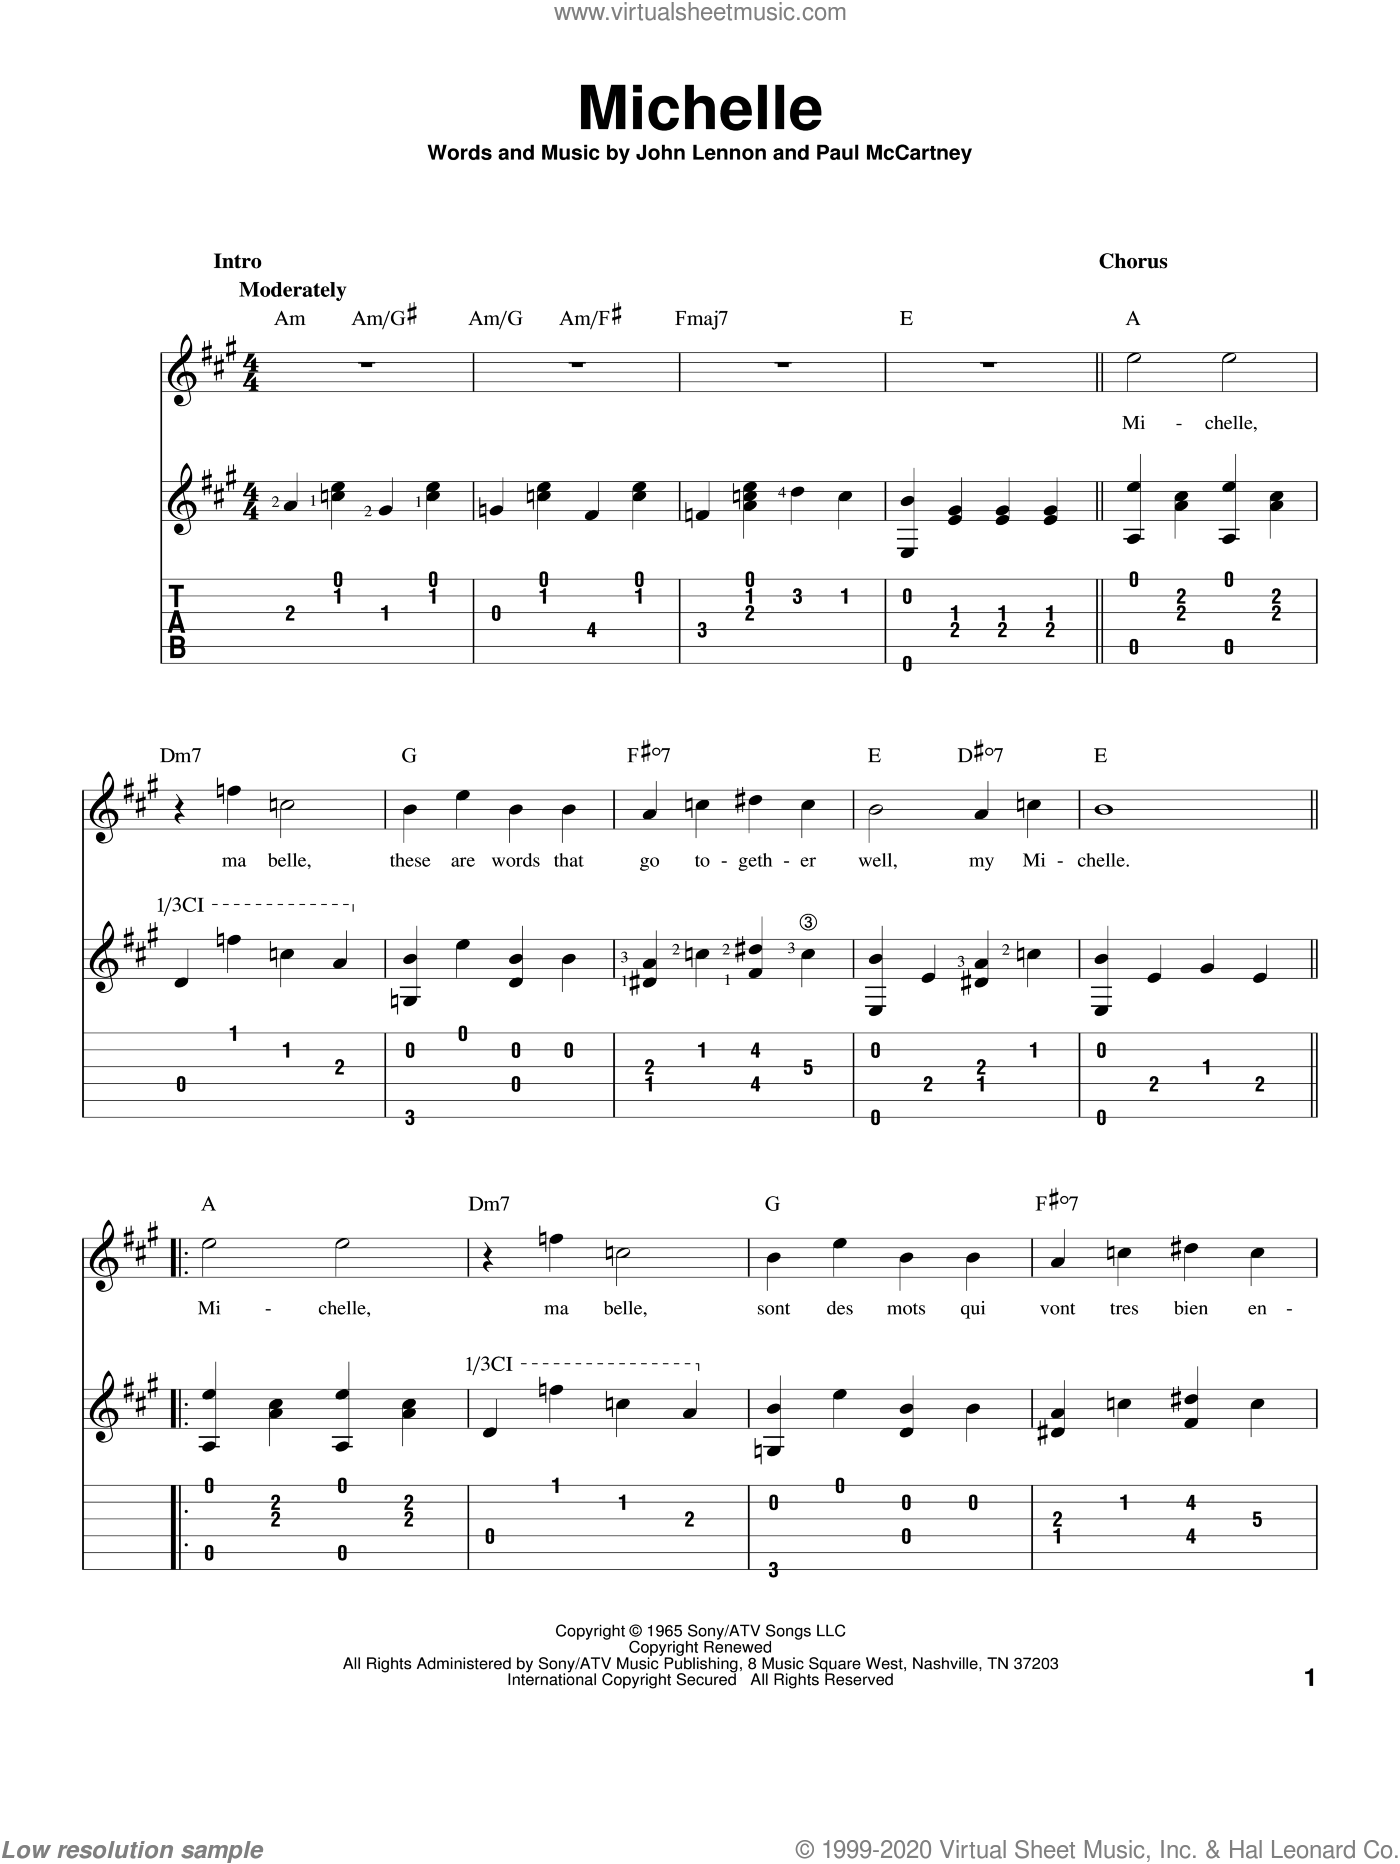 Michelle sheet music for guitar solo by Paul McCartney